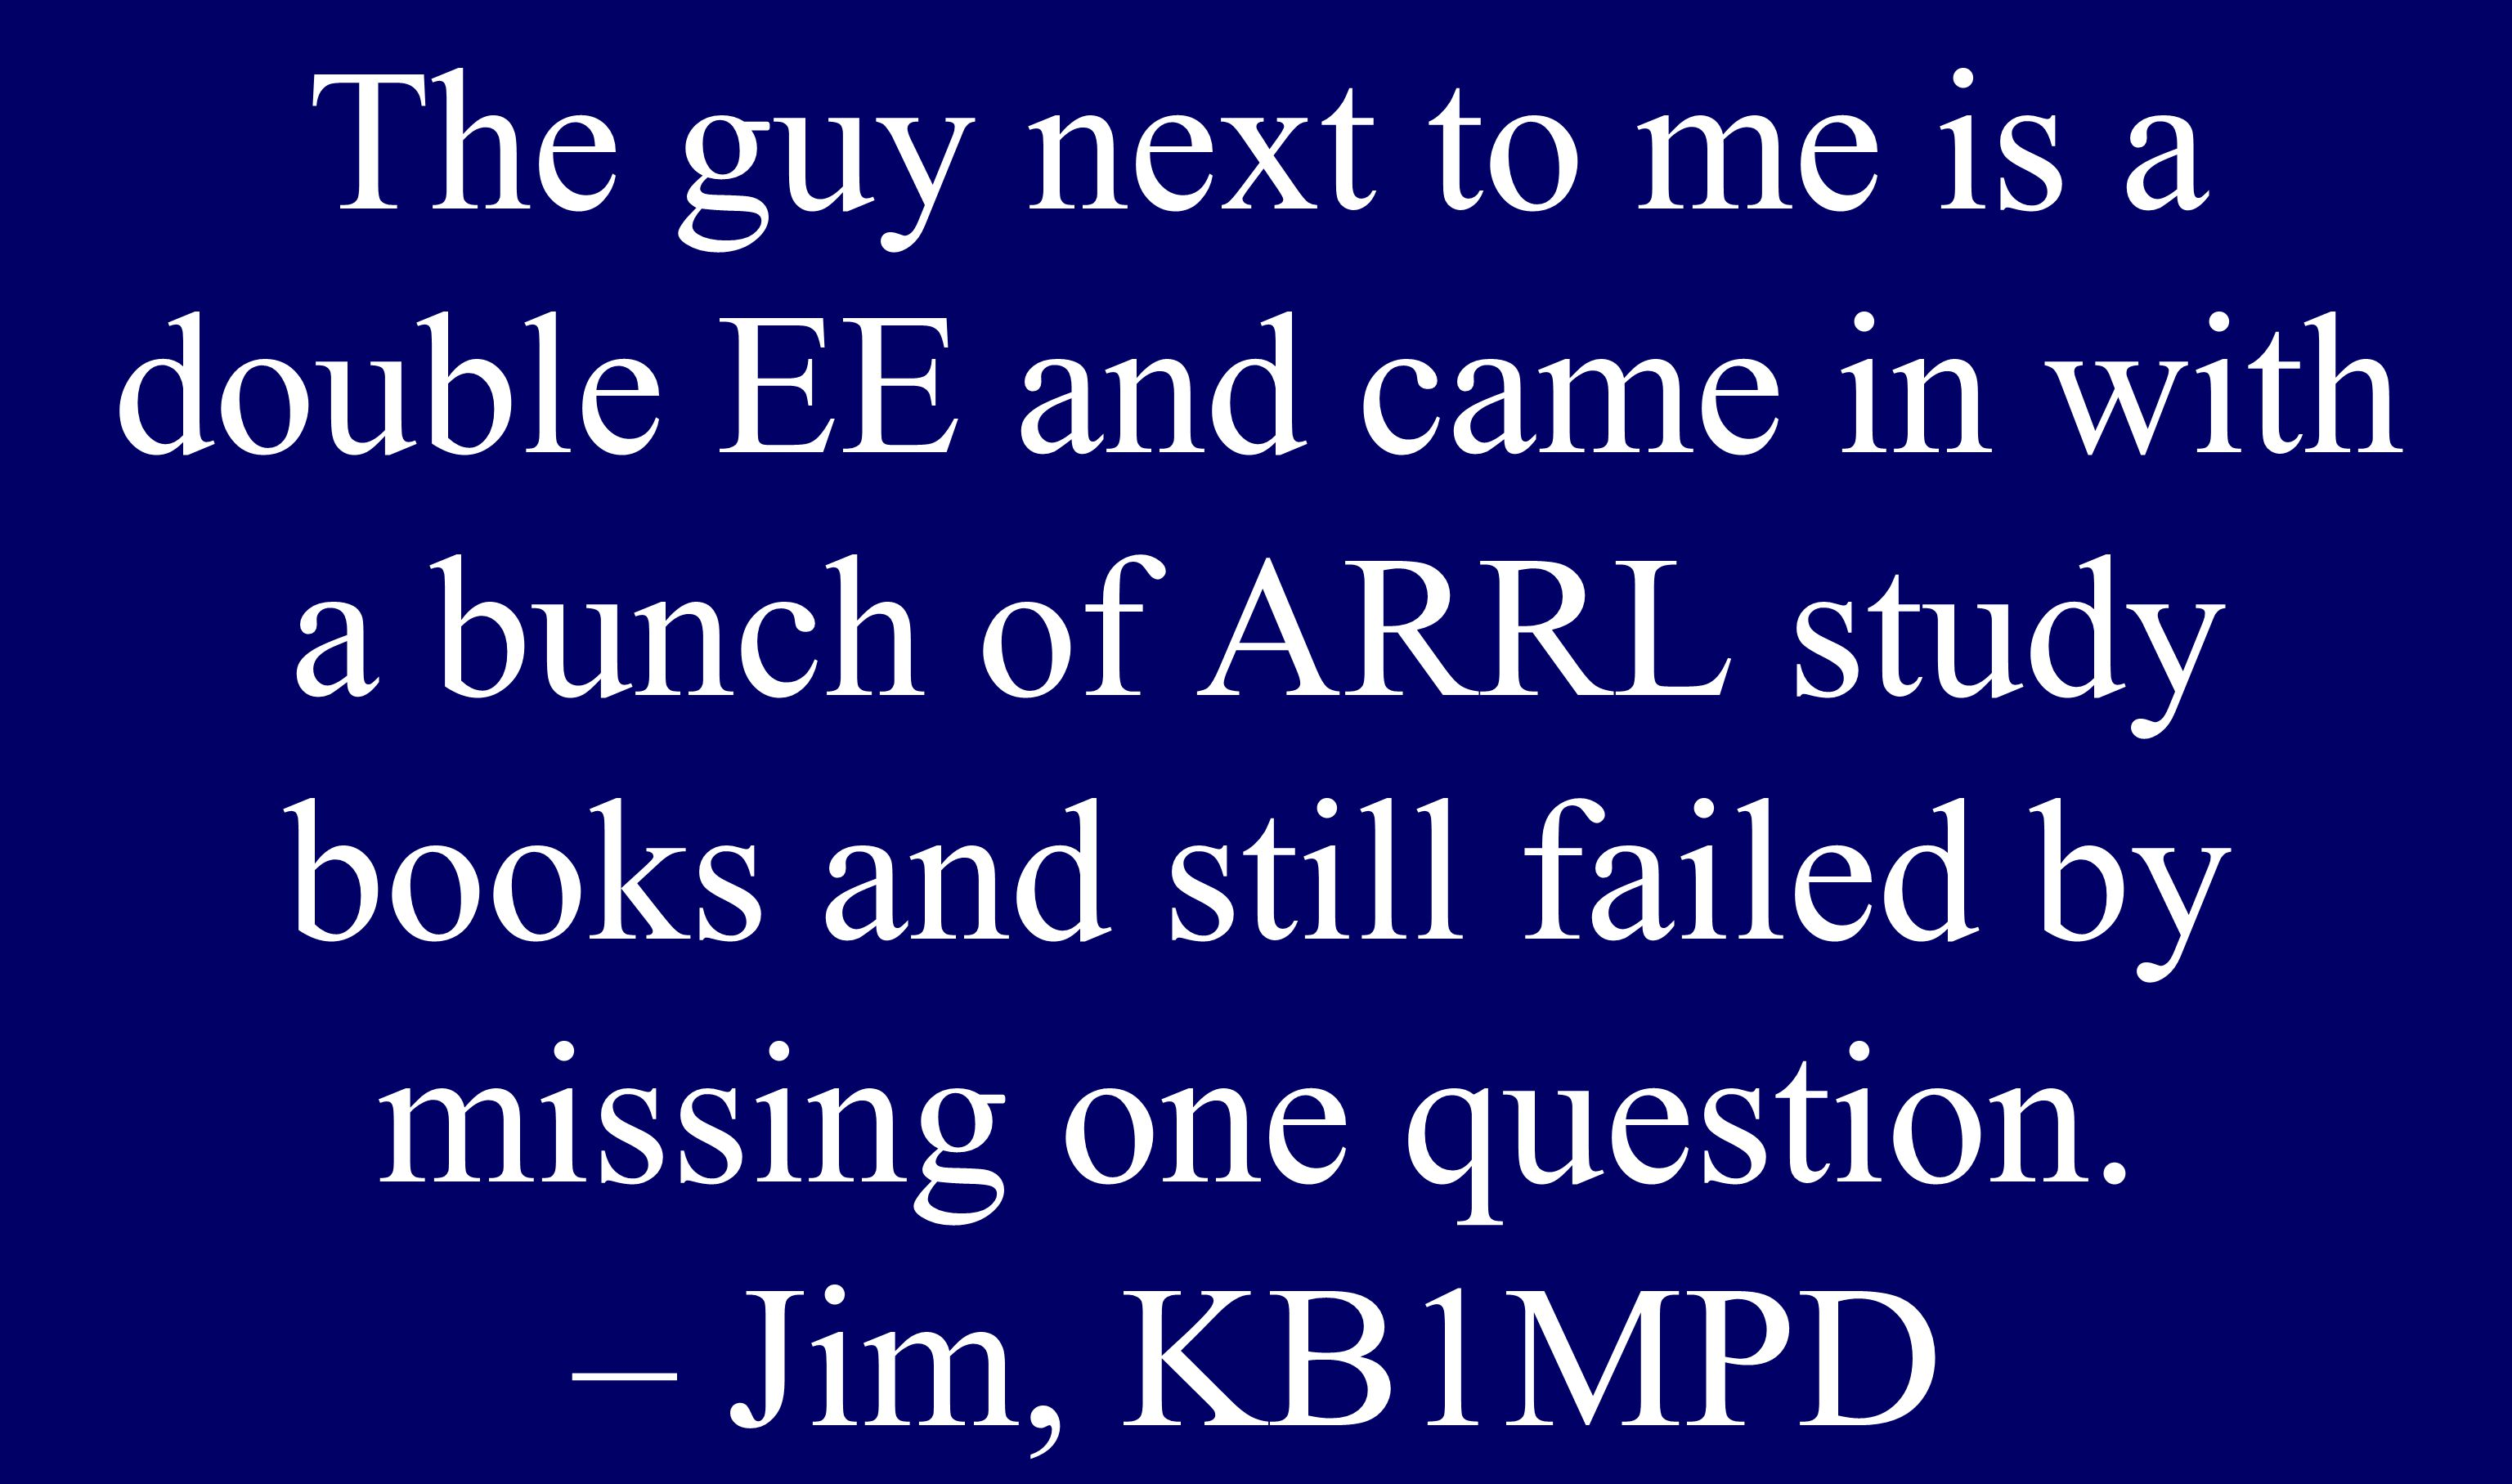 The guy next to me is a double EE and came in with a bunch of ARRL study books and still failed by missing one question. – Jim, KB1MPD